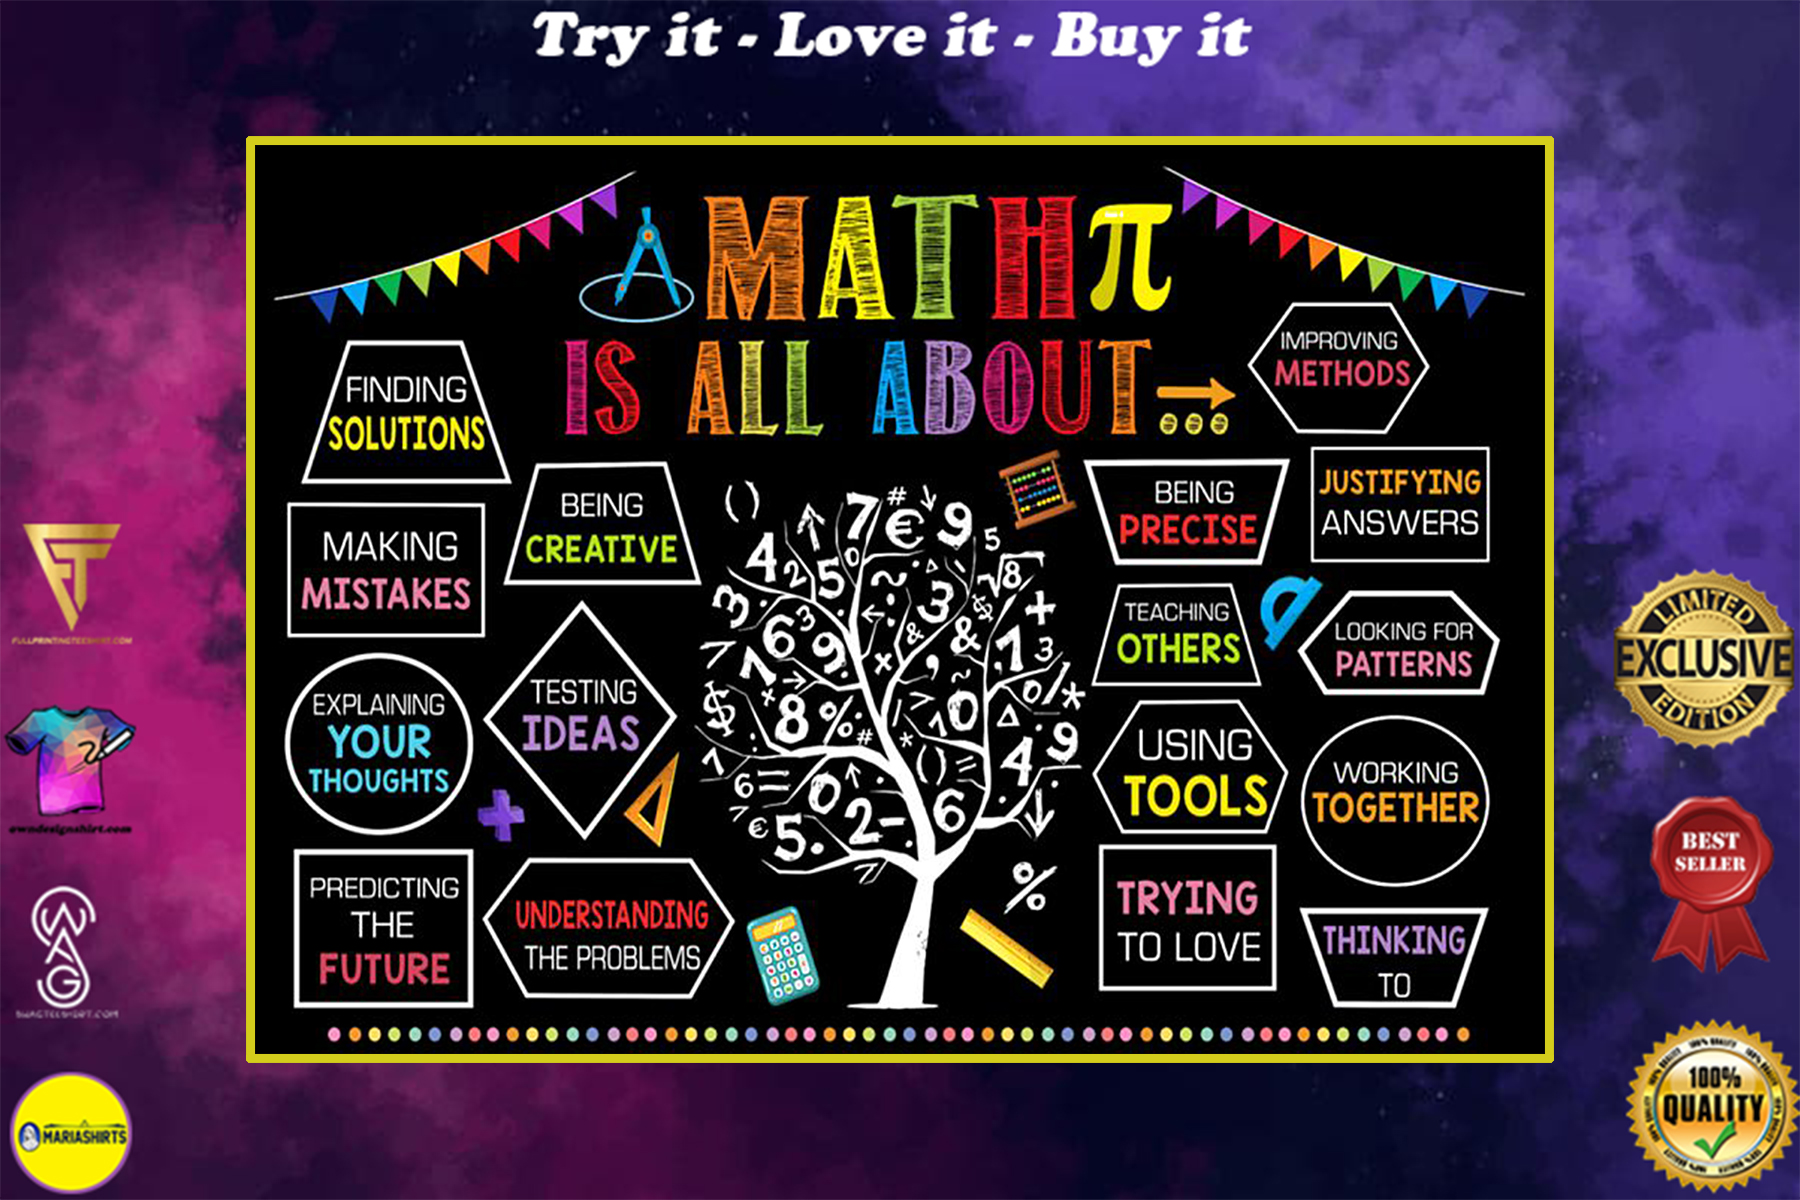 back to school math is all about poster